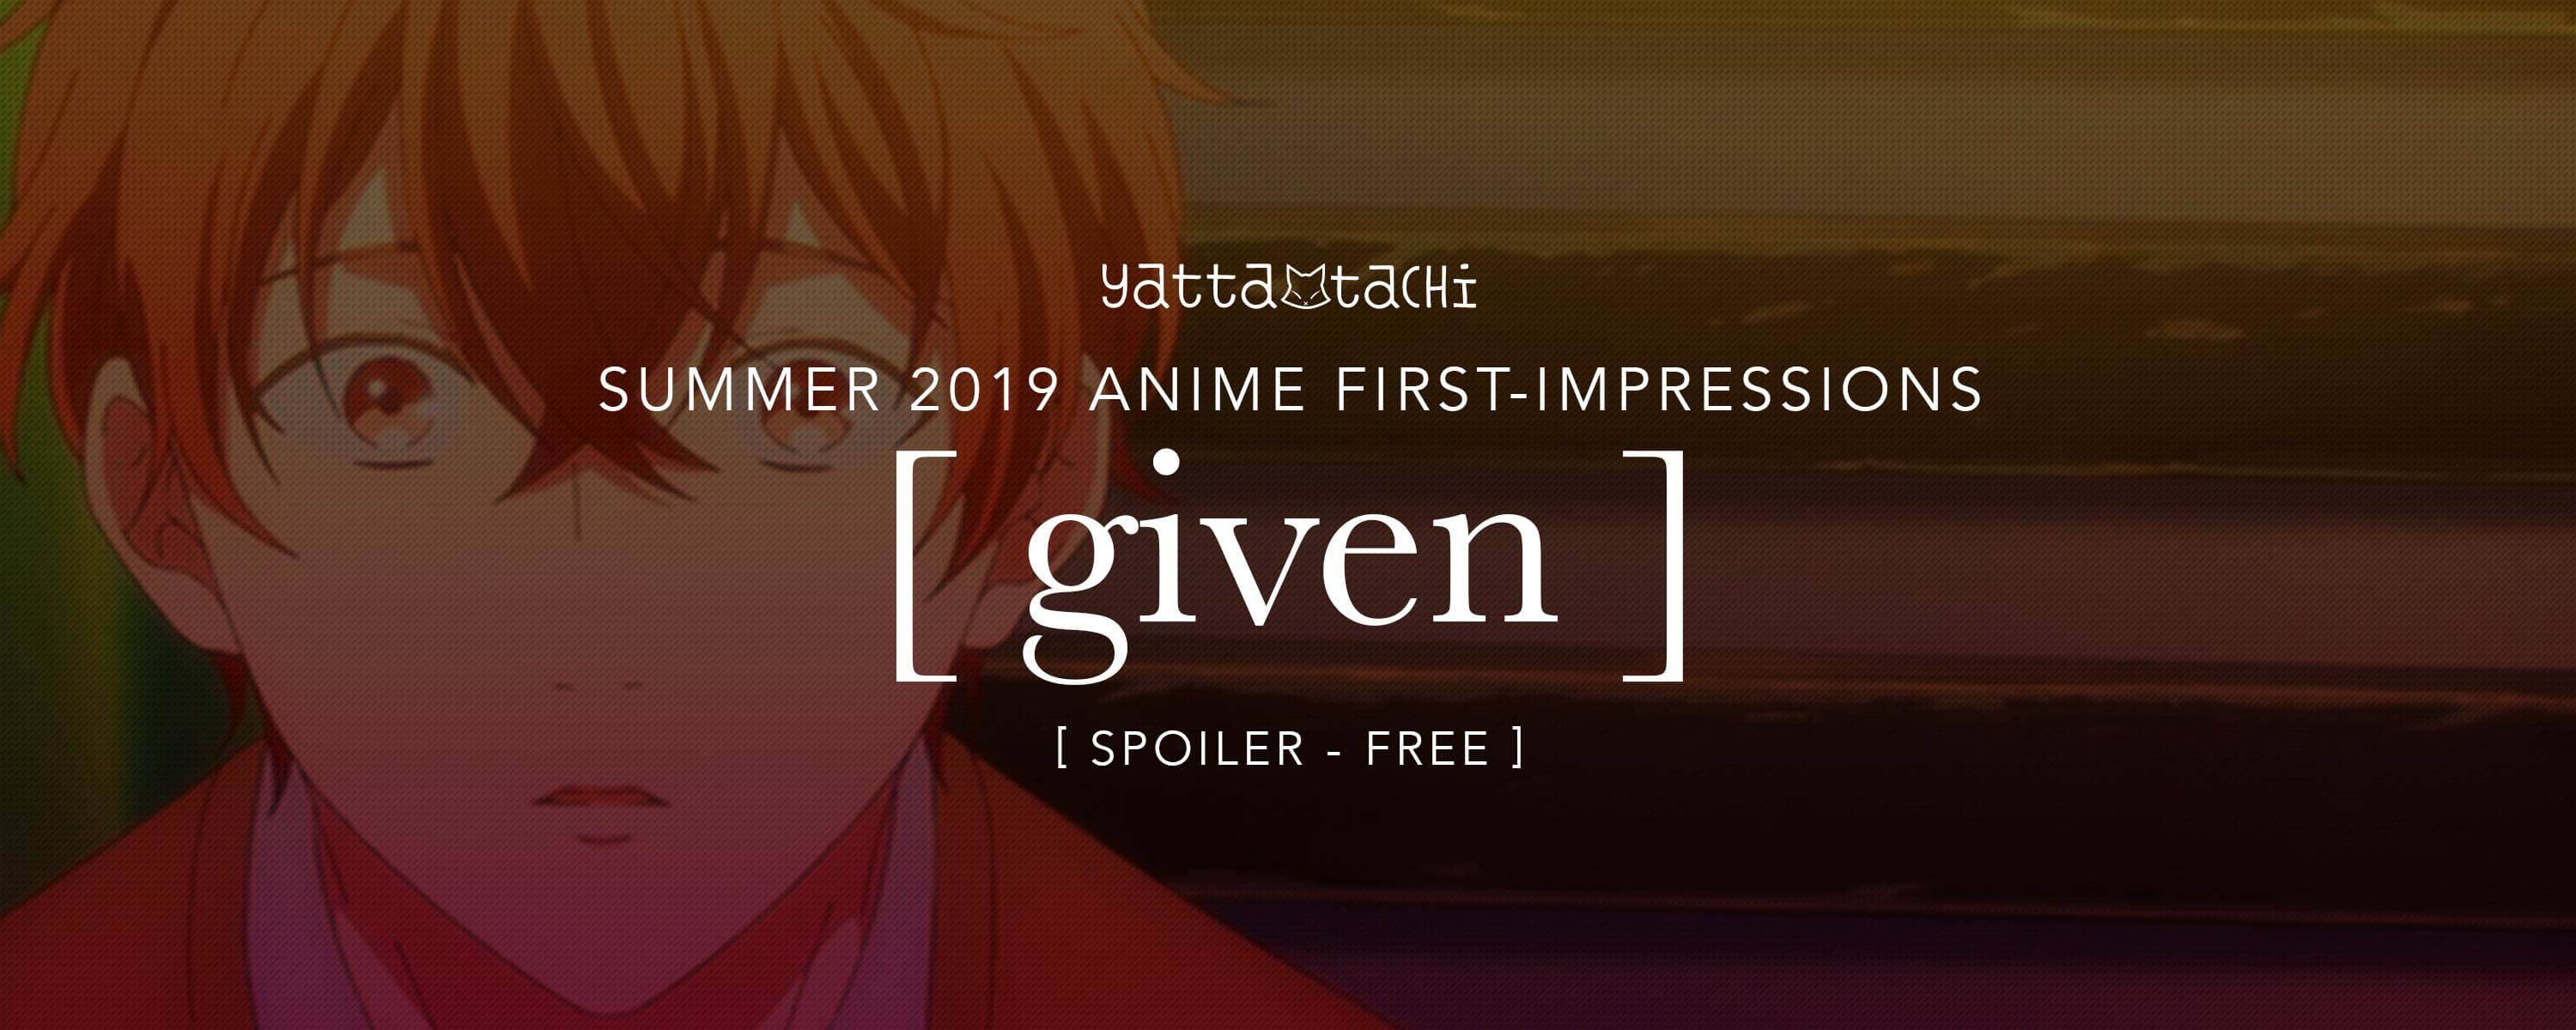 Summer 2019 Anime First Impressions Given Yatta Tachi